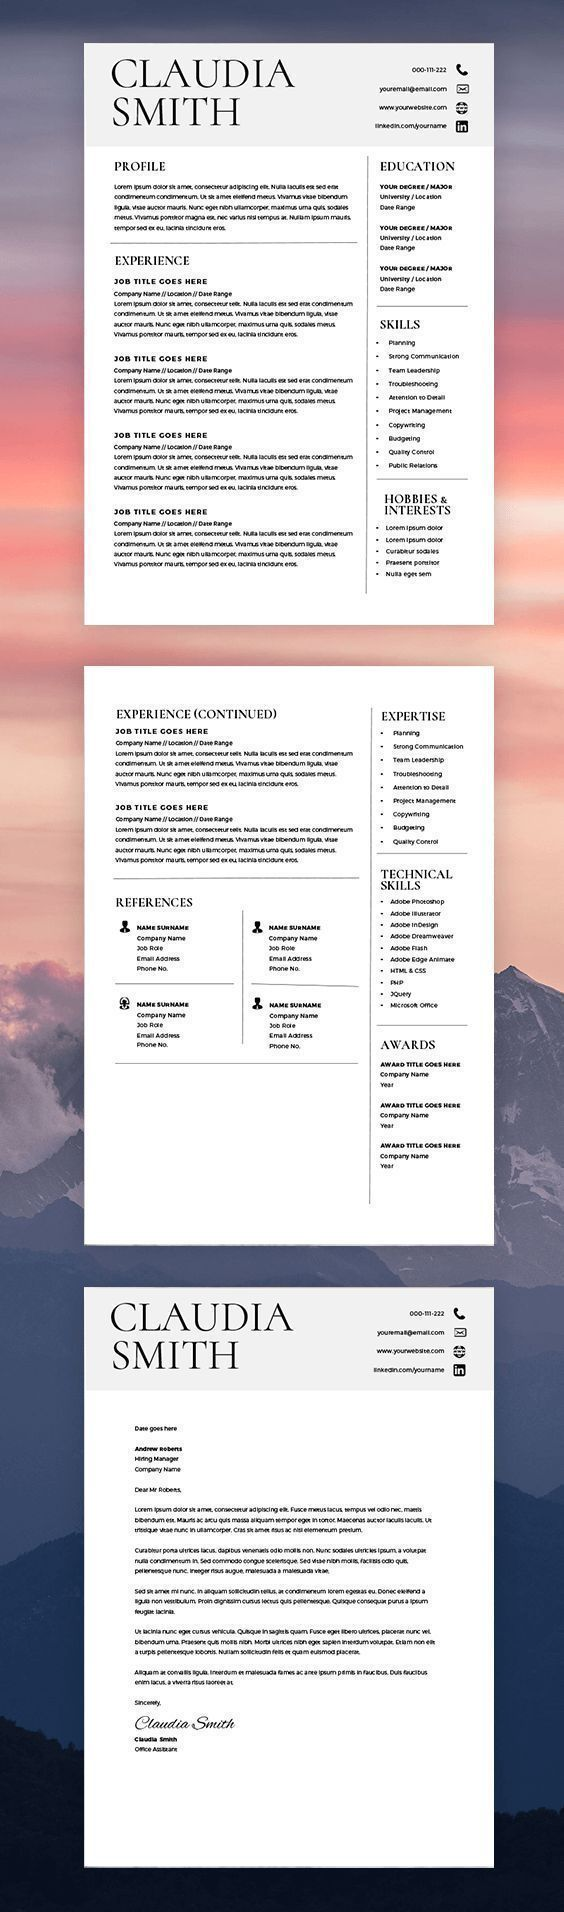 bartender job description resume%0A Medical Resume Template Word  Minimalist Resume with Cover Letter  Resume  Template Word Mac  Instant Download  Resume Template Word Modern